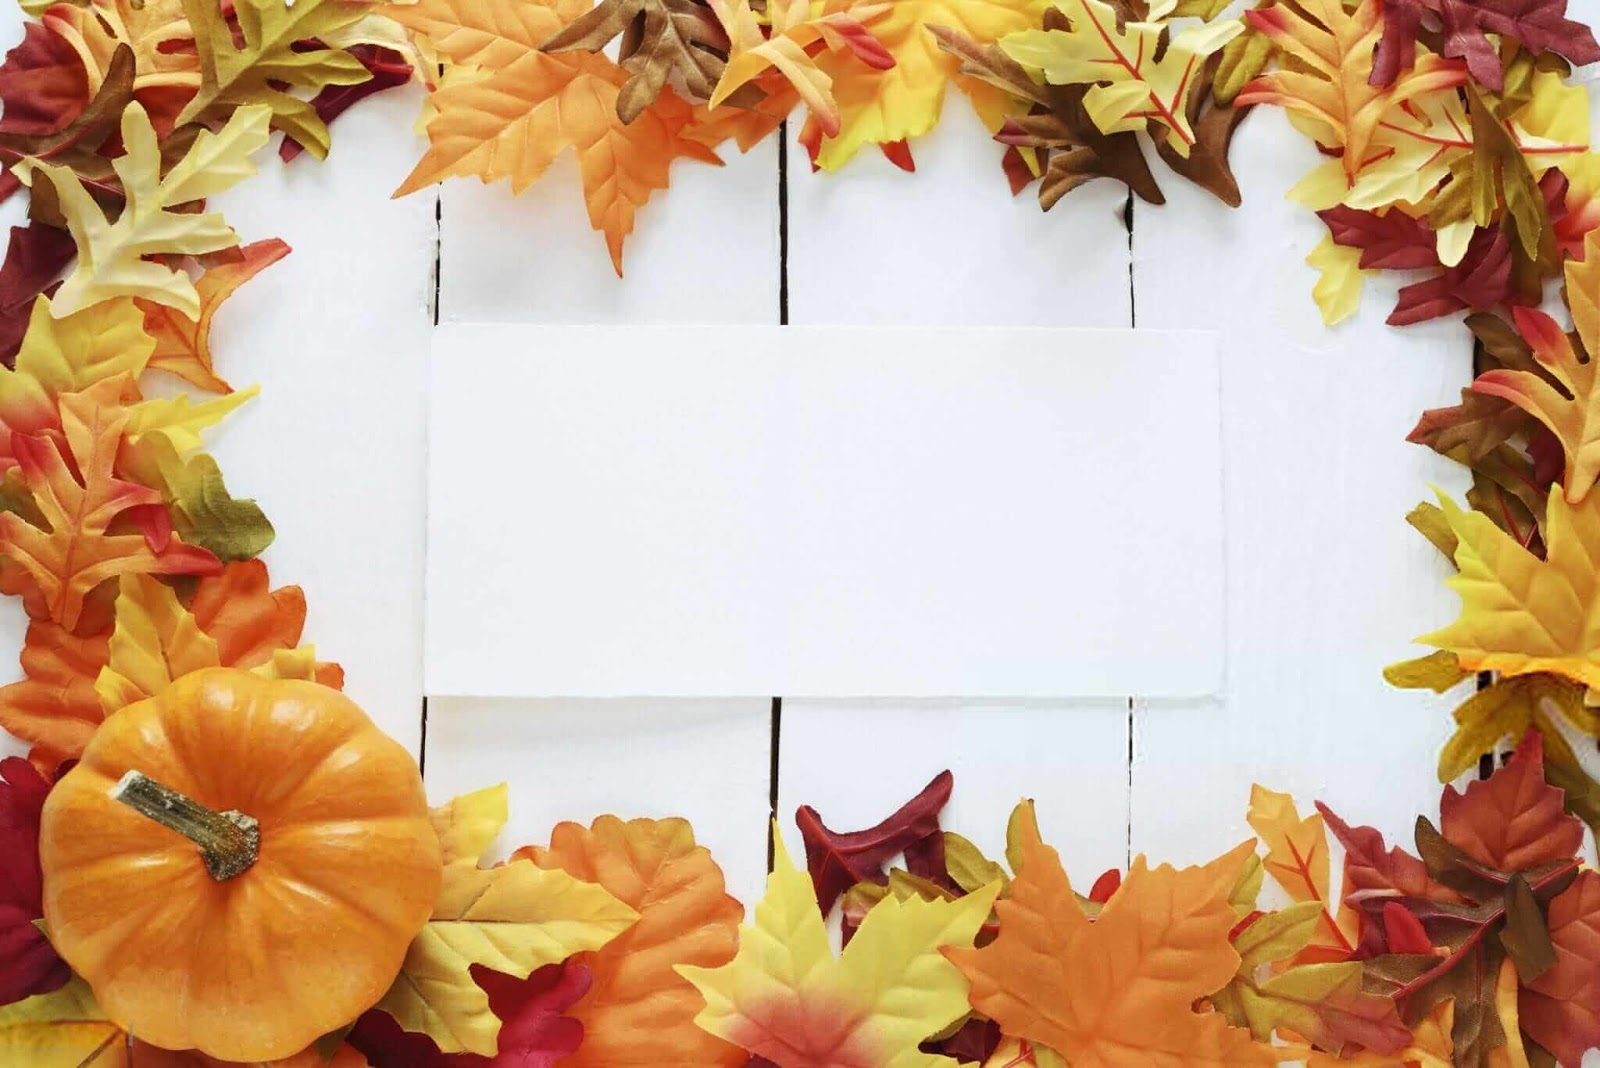 Thanksgiving Wallpaper Free, Free Thanksgiving Wallpaper